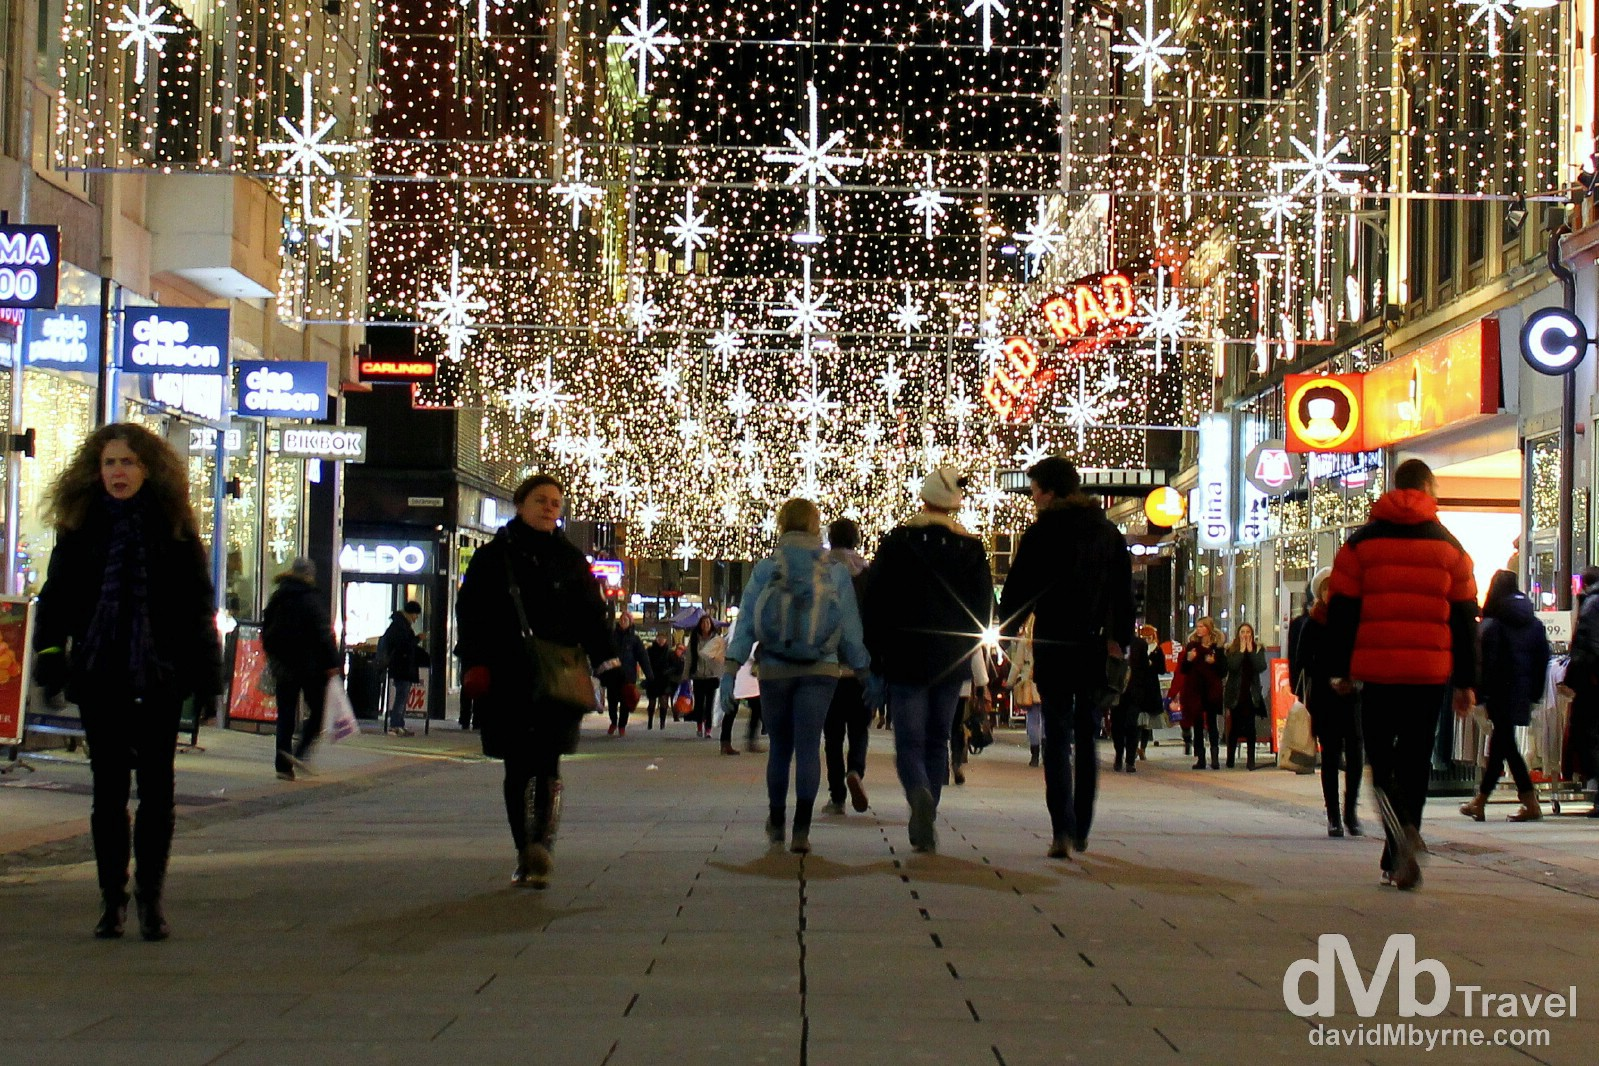 A festive look on Torggata, a pedestrianised street in central Oslo, Norway. November 29th 2012.